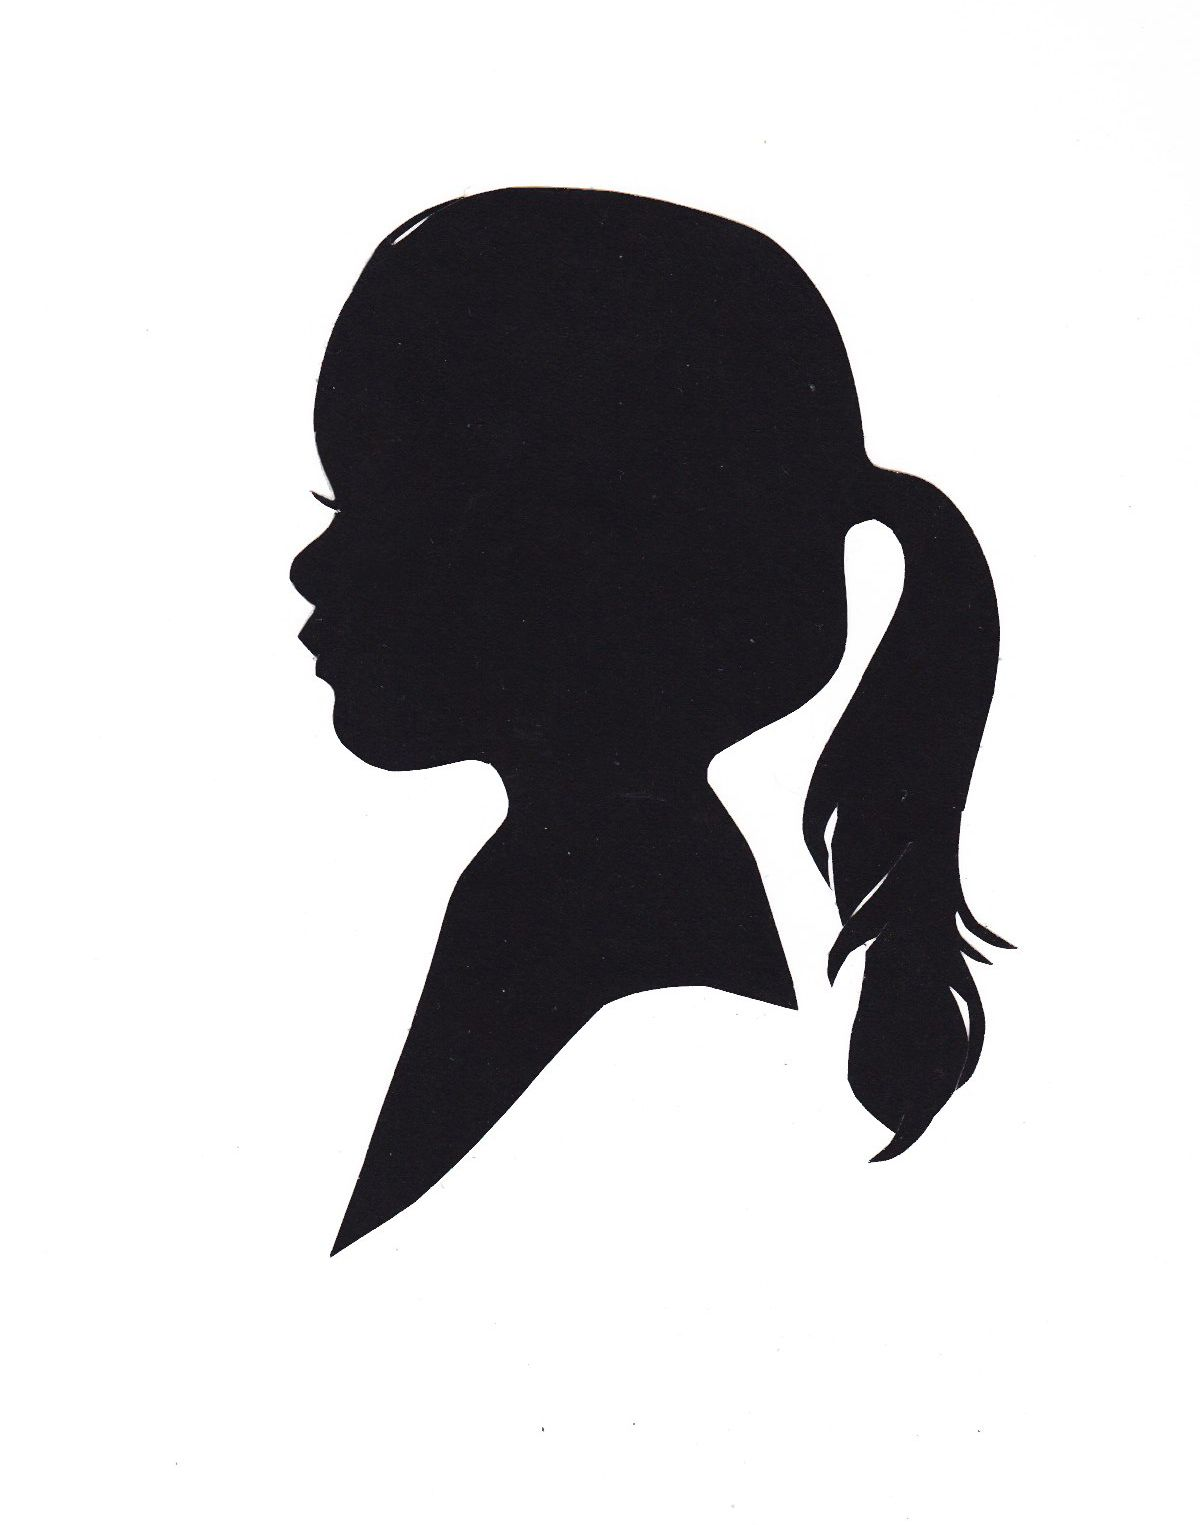 Little Girl With Ponytail Silhouette.